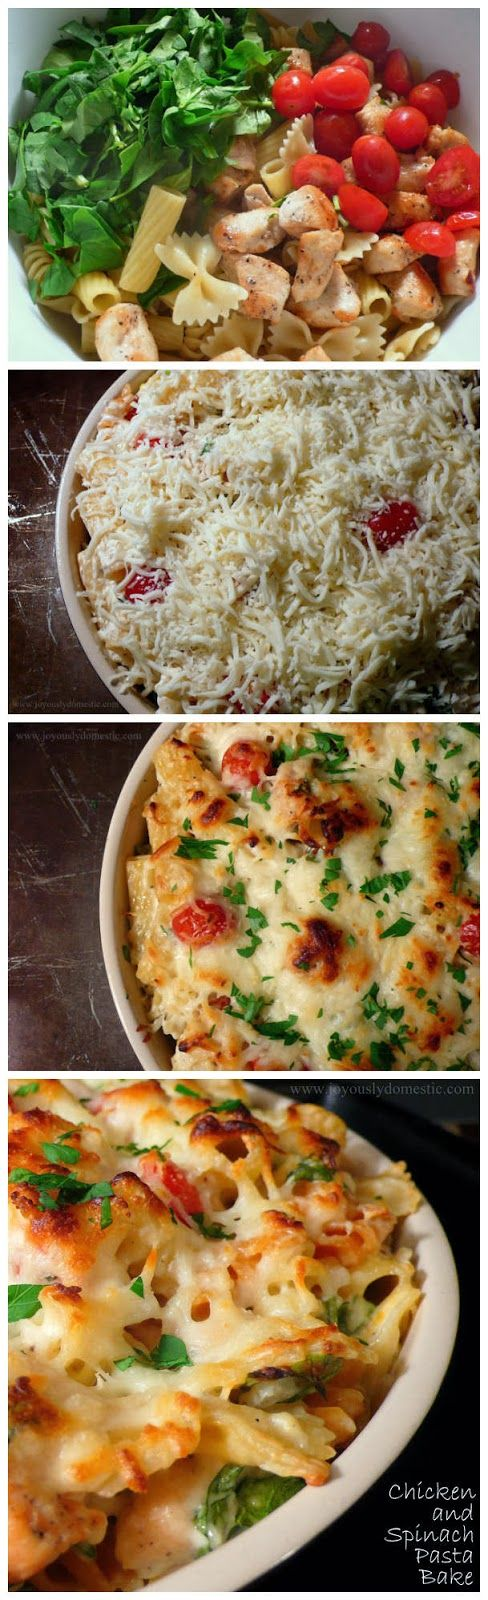 Chicken, Basil, Tomato, Cheese and Pasta - now that must bake into some delicious dish!